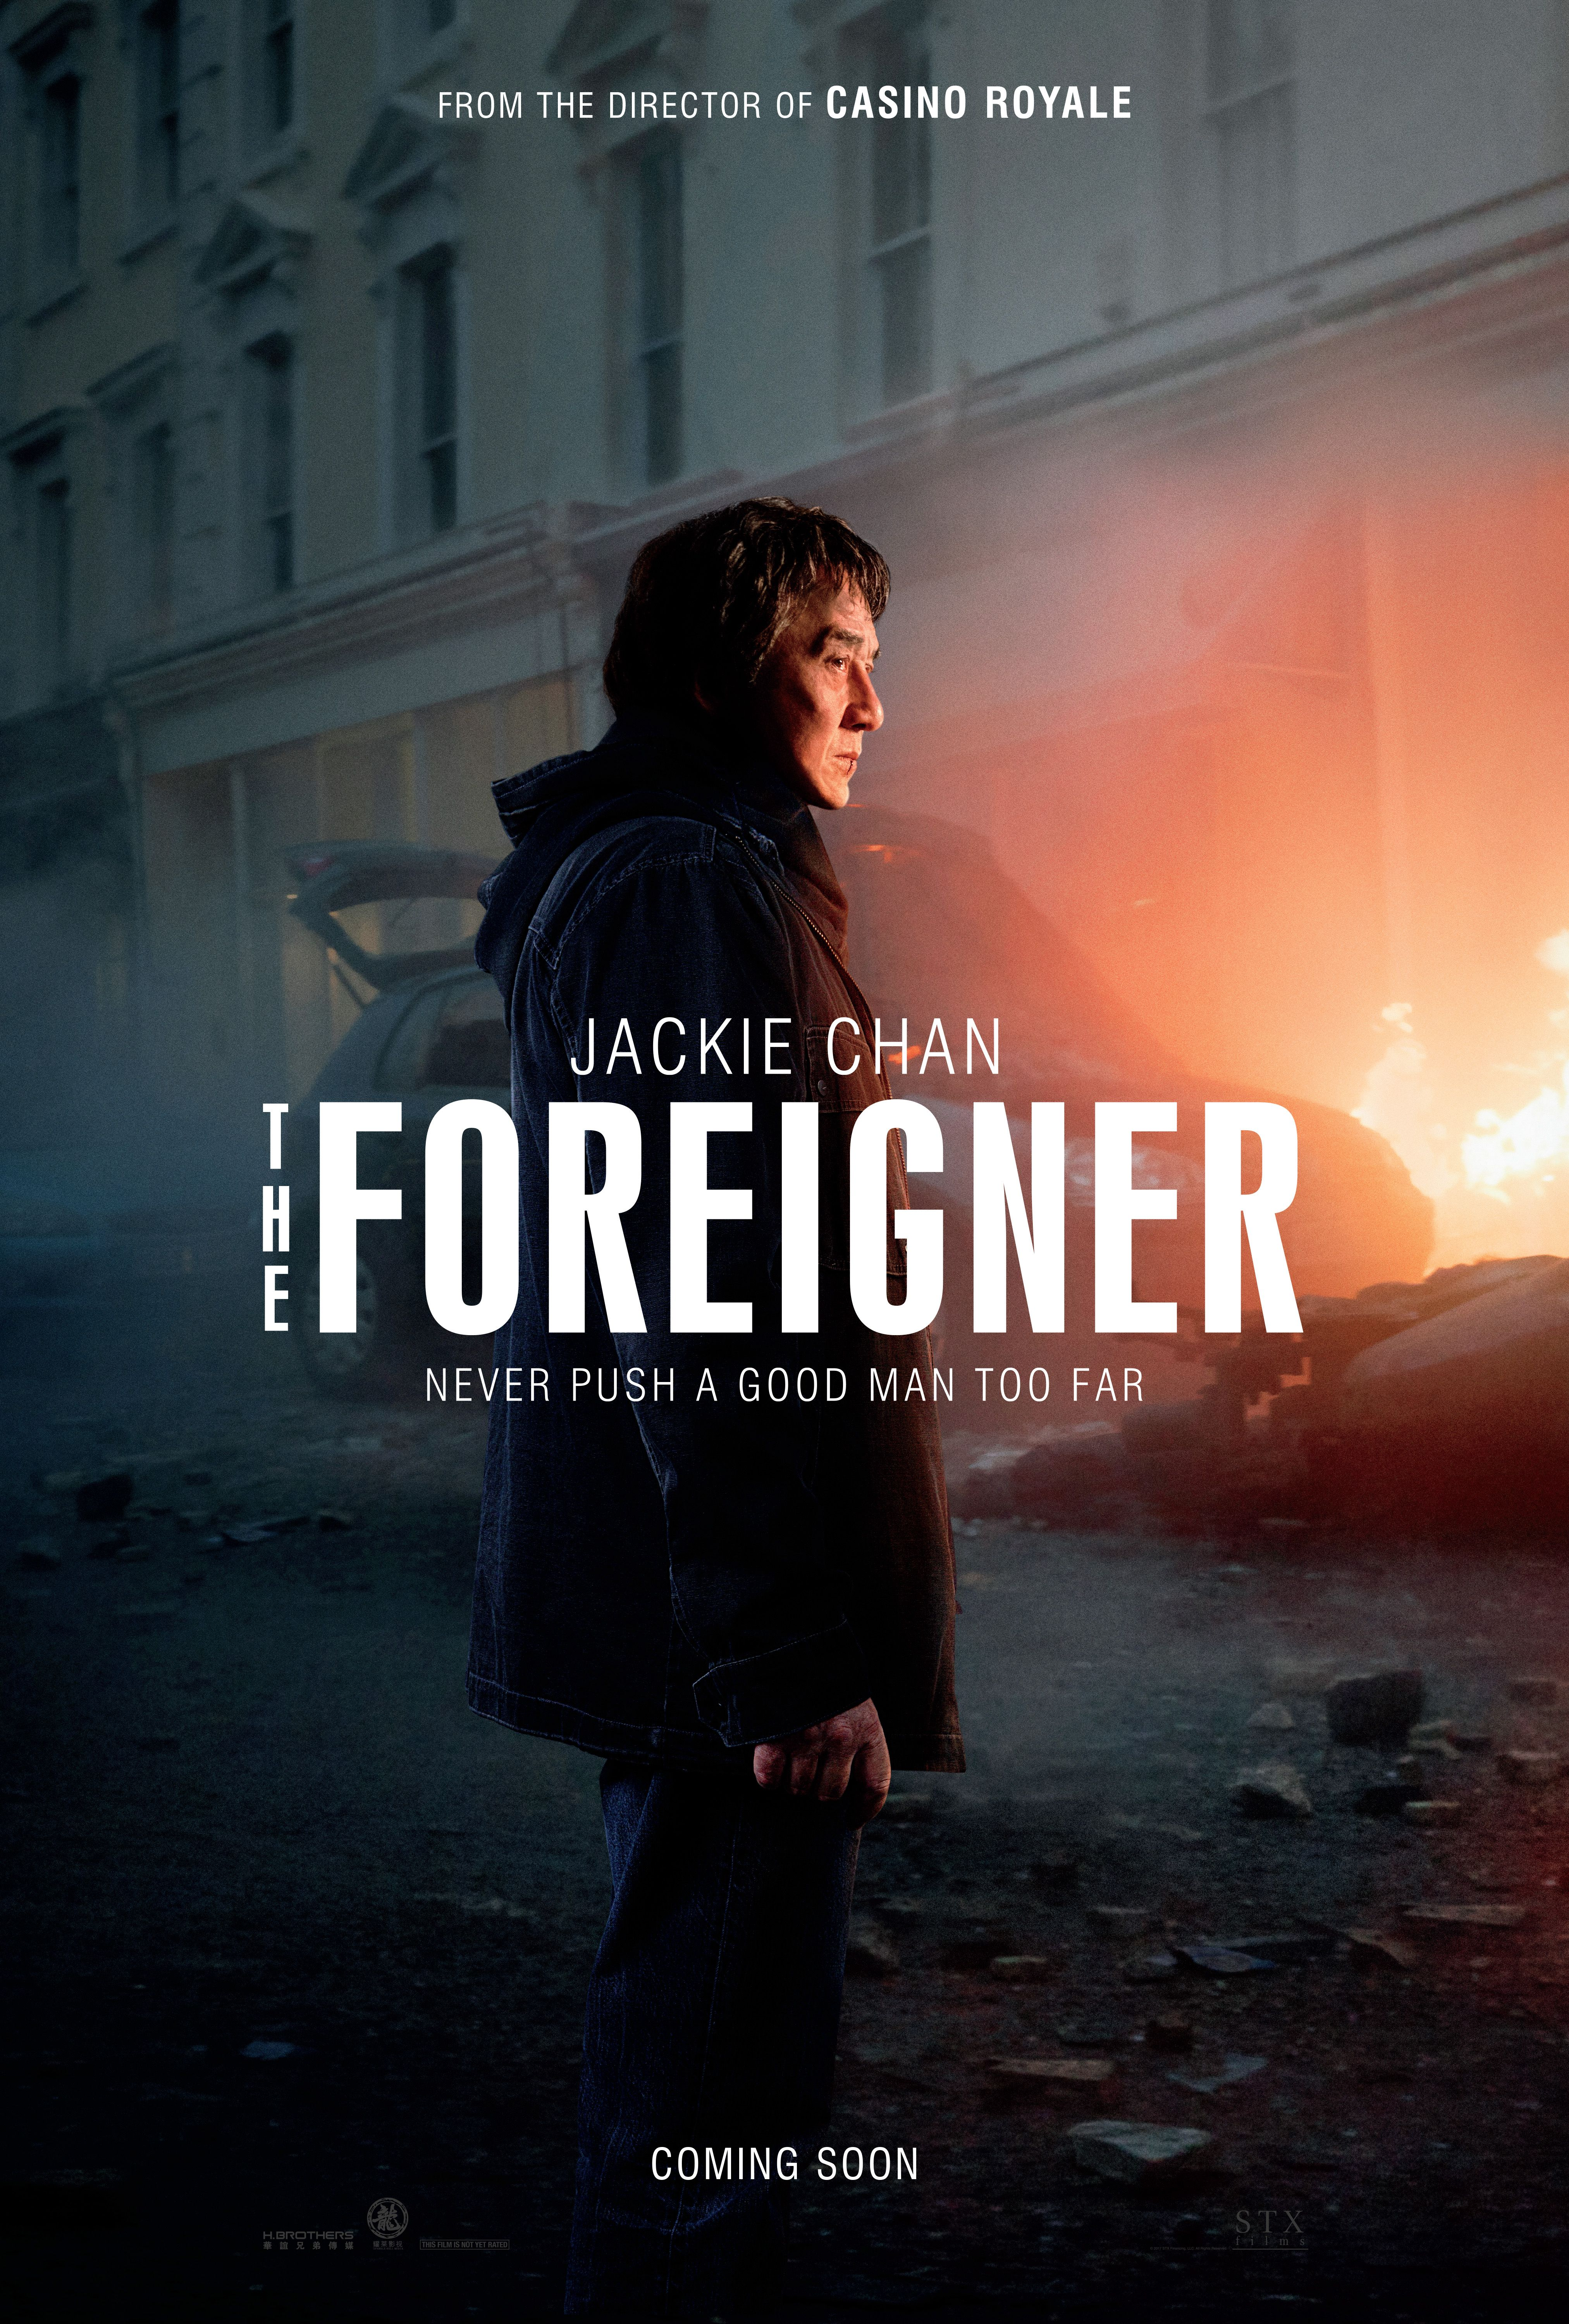 Watch Movie The Foreigner Full Hd Http Teslamovies Com Movie The Foreigner Filmes Completos Gratis Filmes Online Gratis Jackie Chan